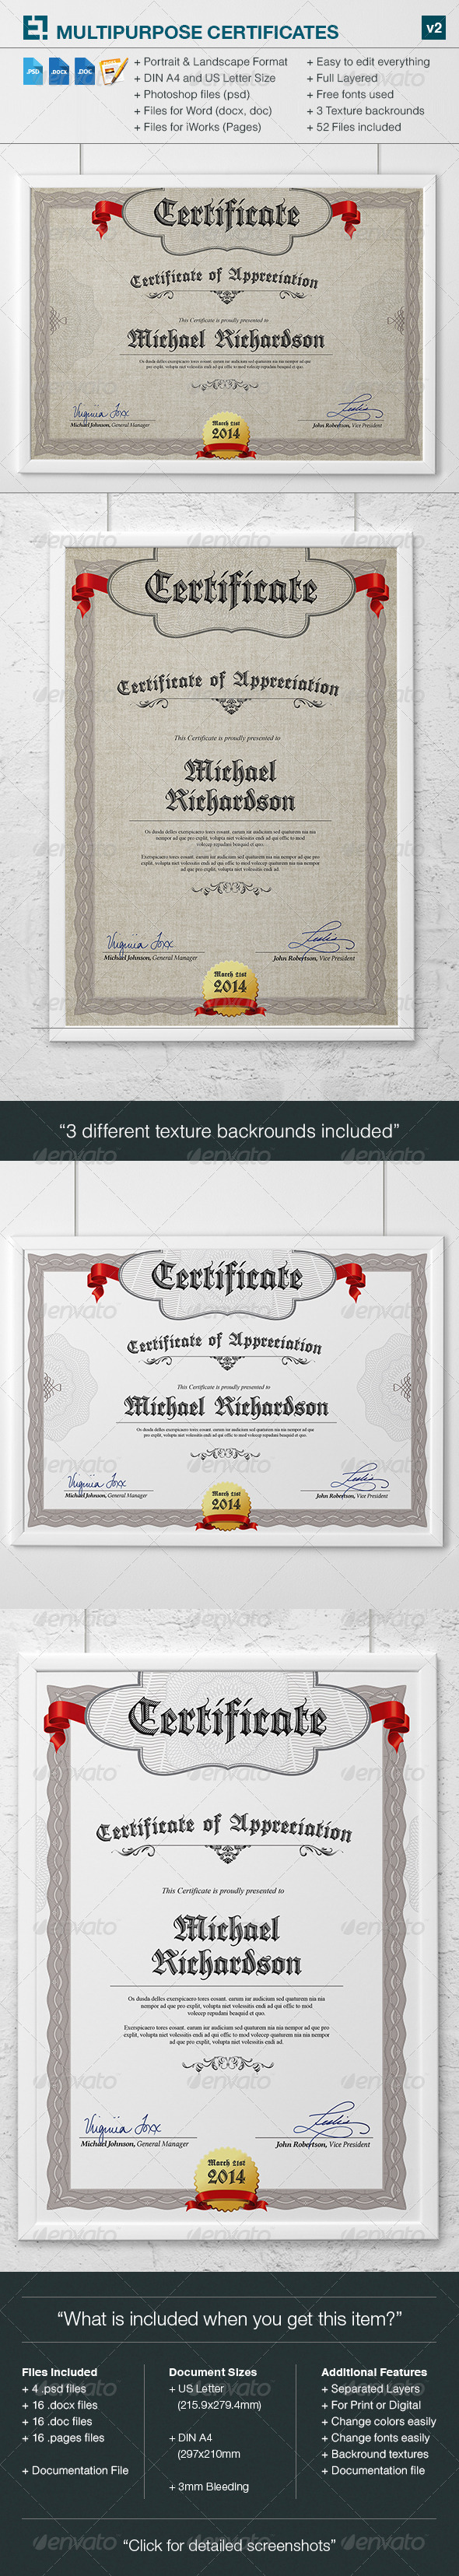 Multipurpose Certificates v2